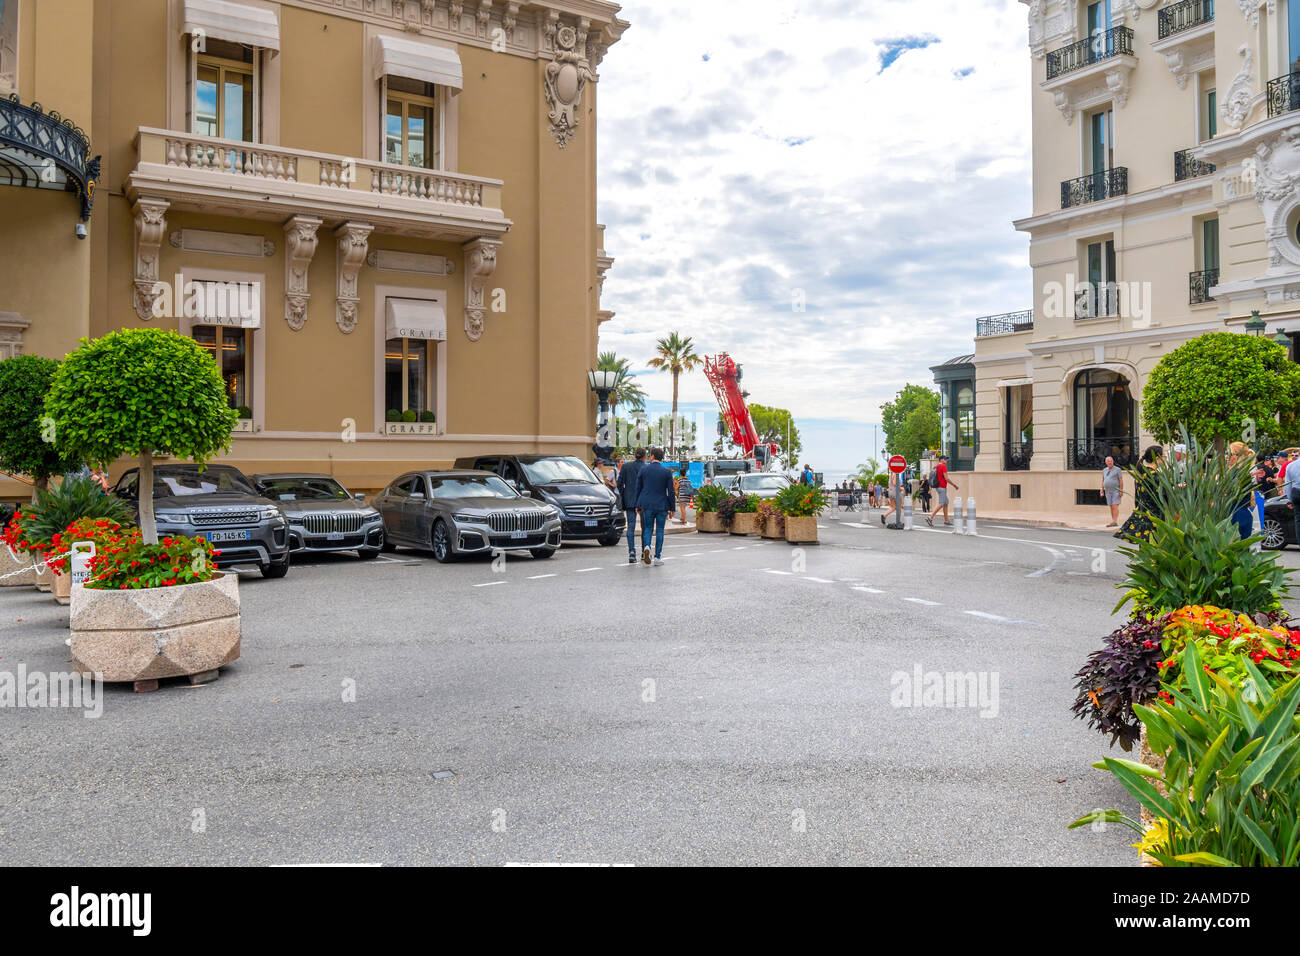 Two well dressed men leave the Monaco Casino parking lot on their way  to the harbor along the French Riviera. Stock Photo